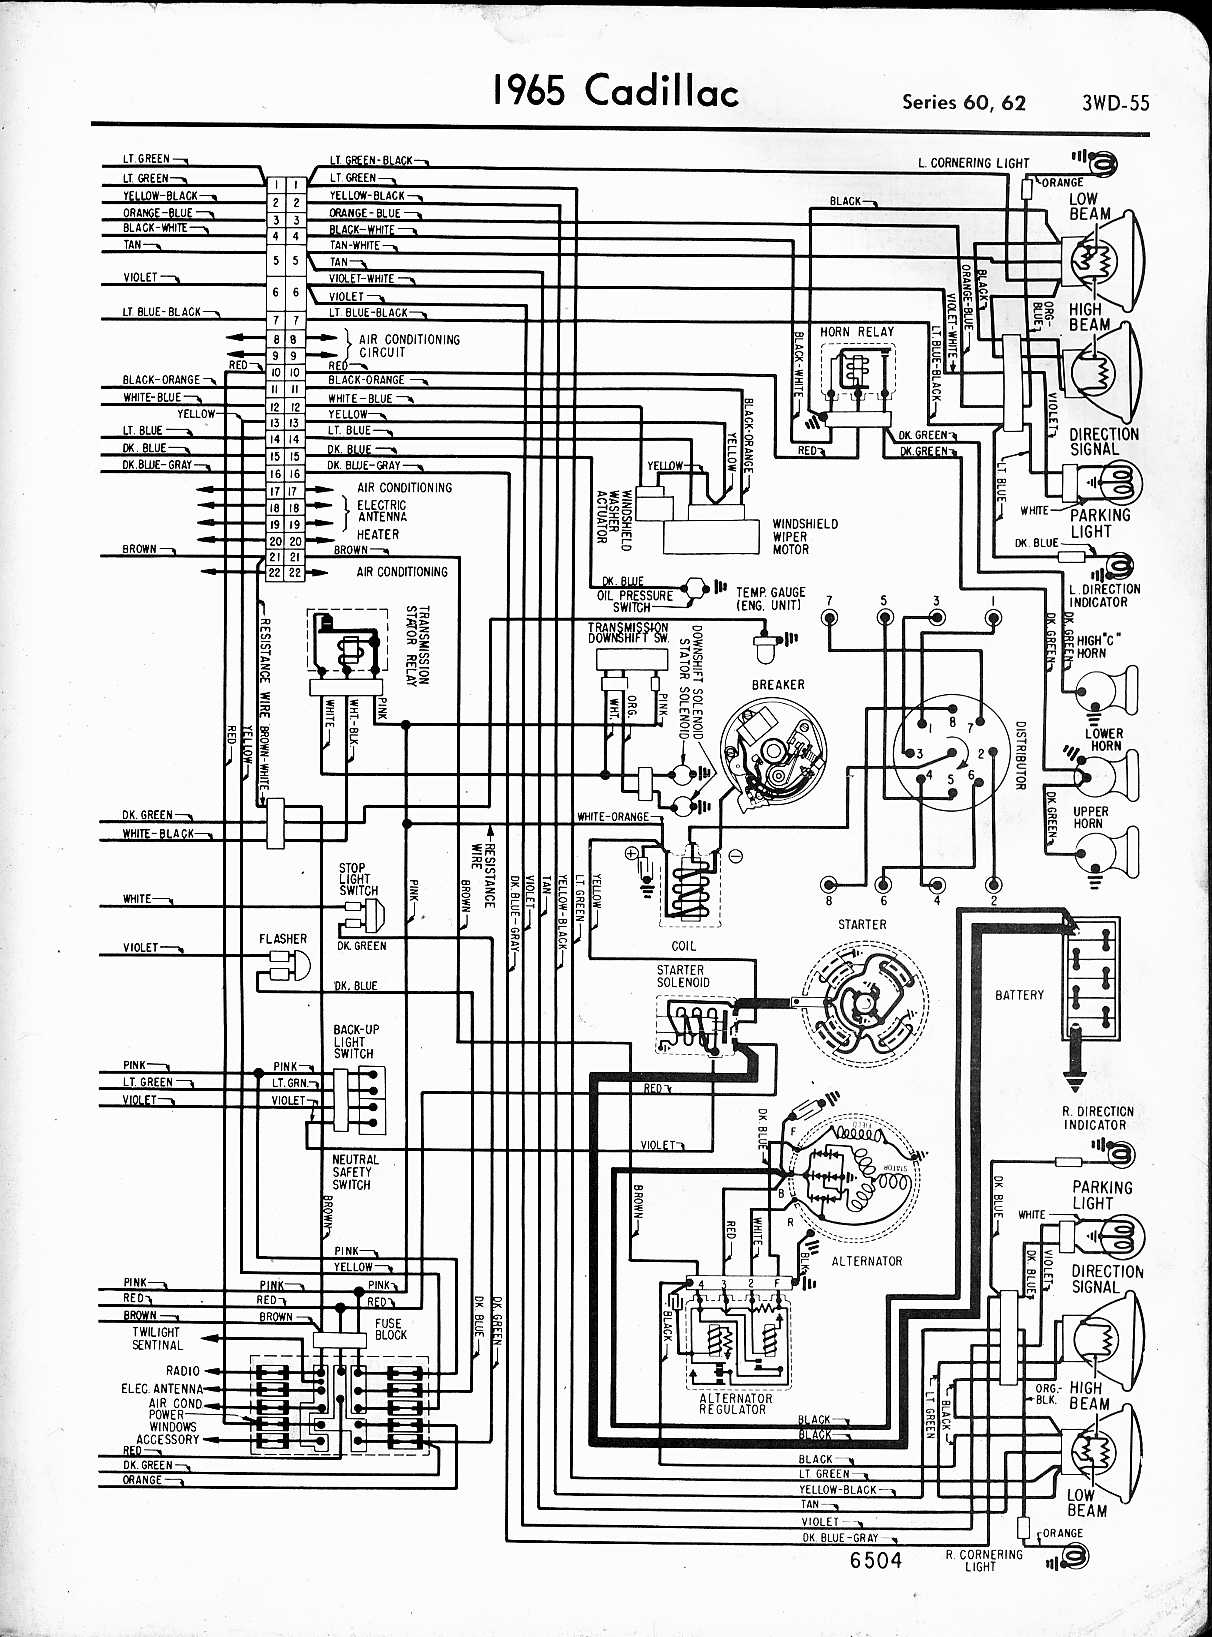 Cadillac Wiring Diagrams: 1957-1965 on 2007 forenza fuse diagram, 2007 forenza cooling system, 2007 forenza oil filter, 2007 forenza water pump, 2006 forenza wiring diagram,